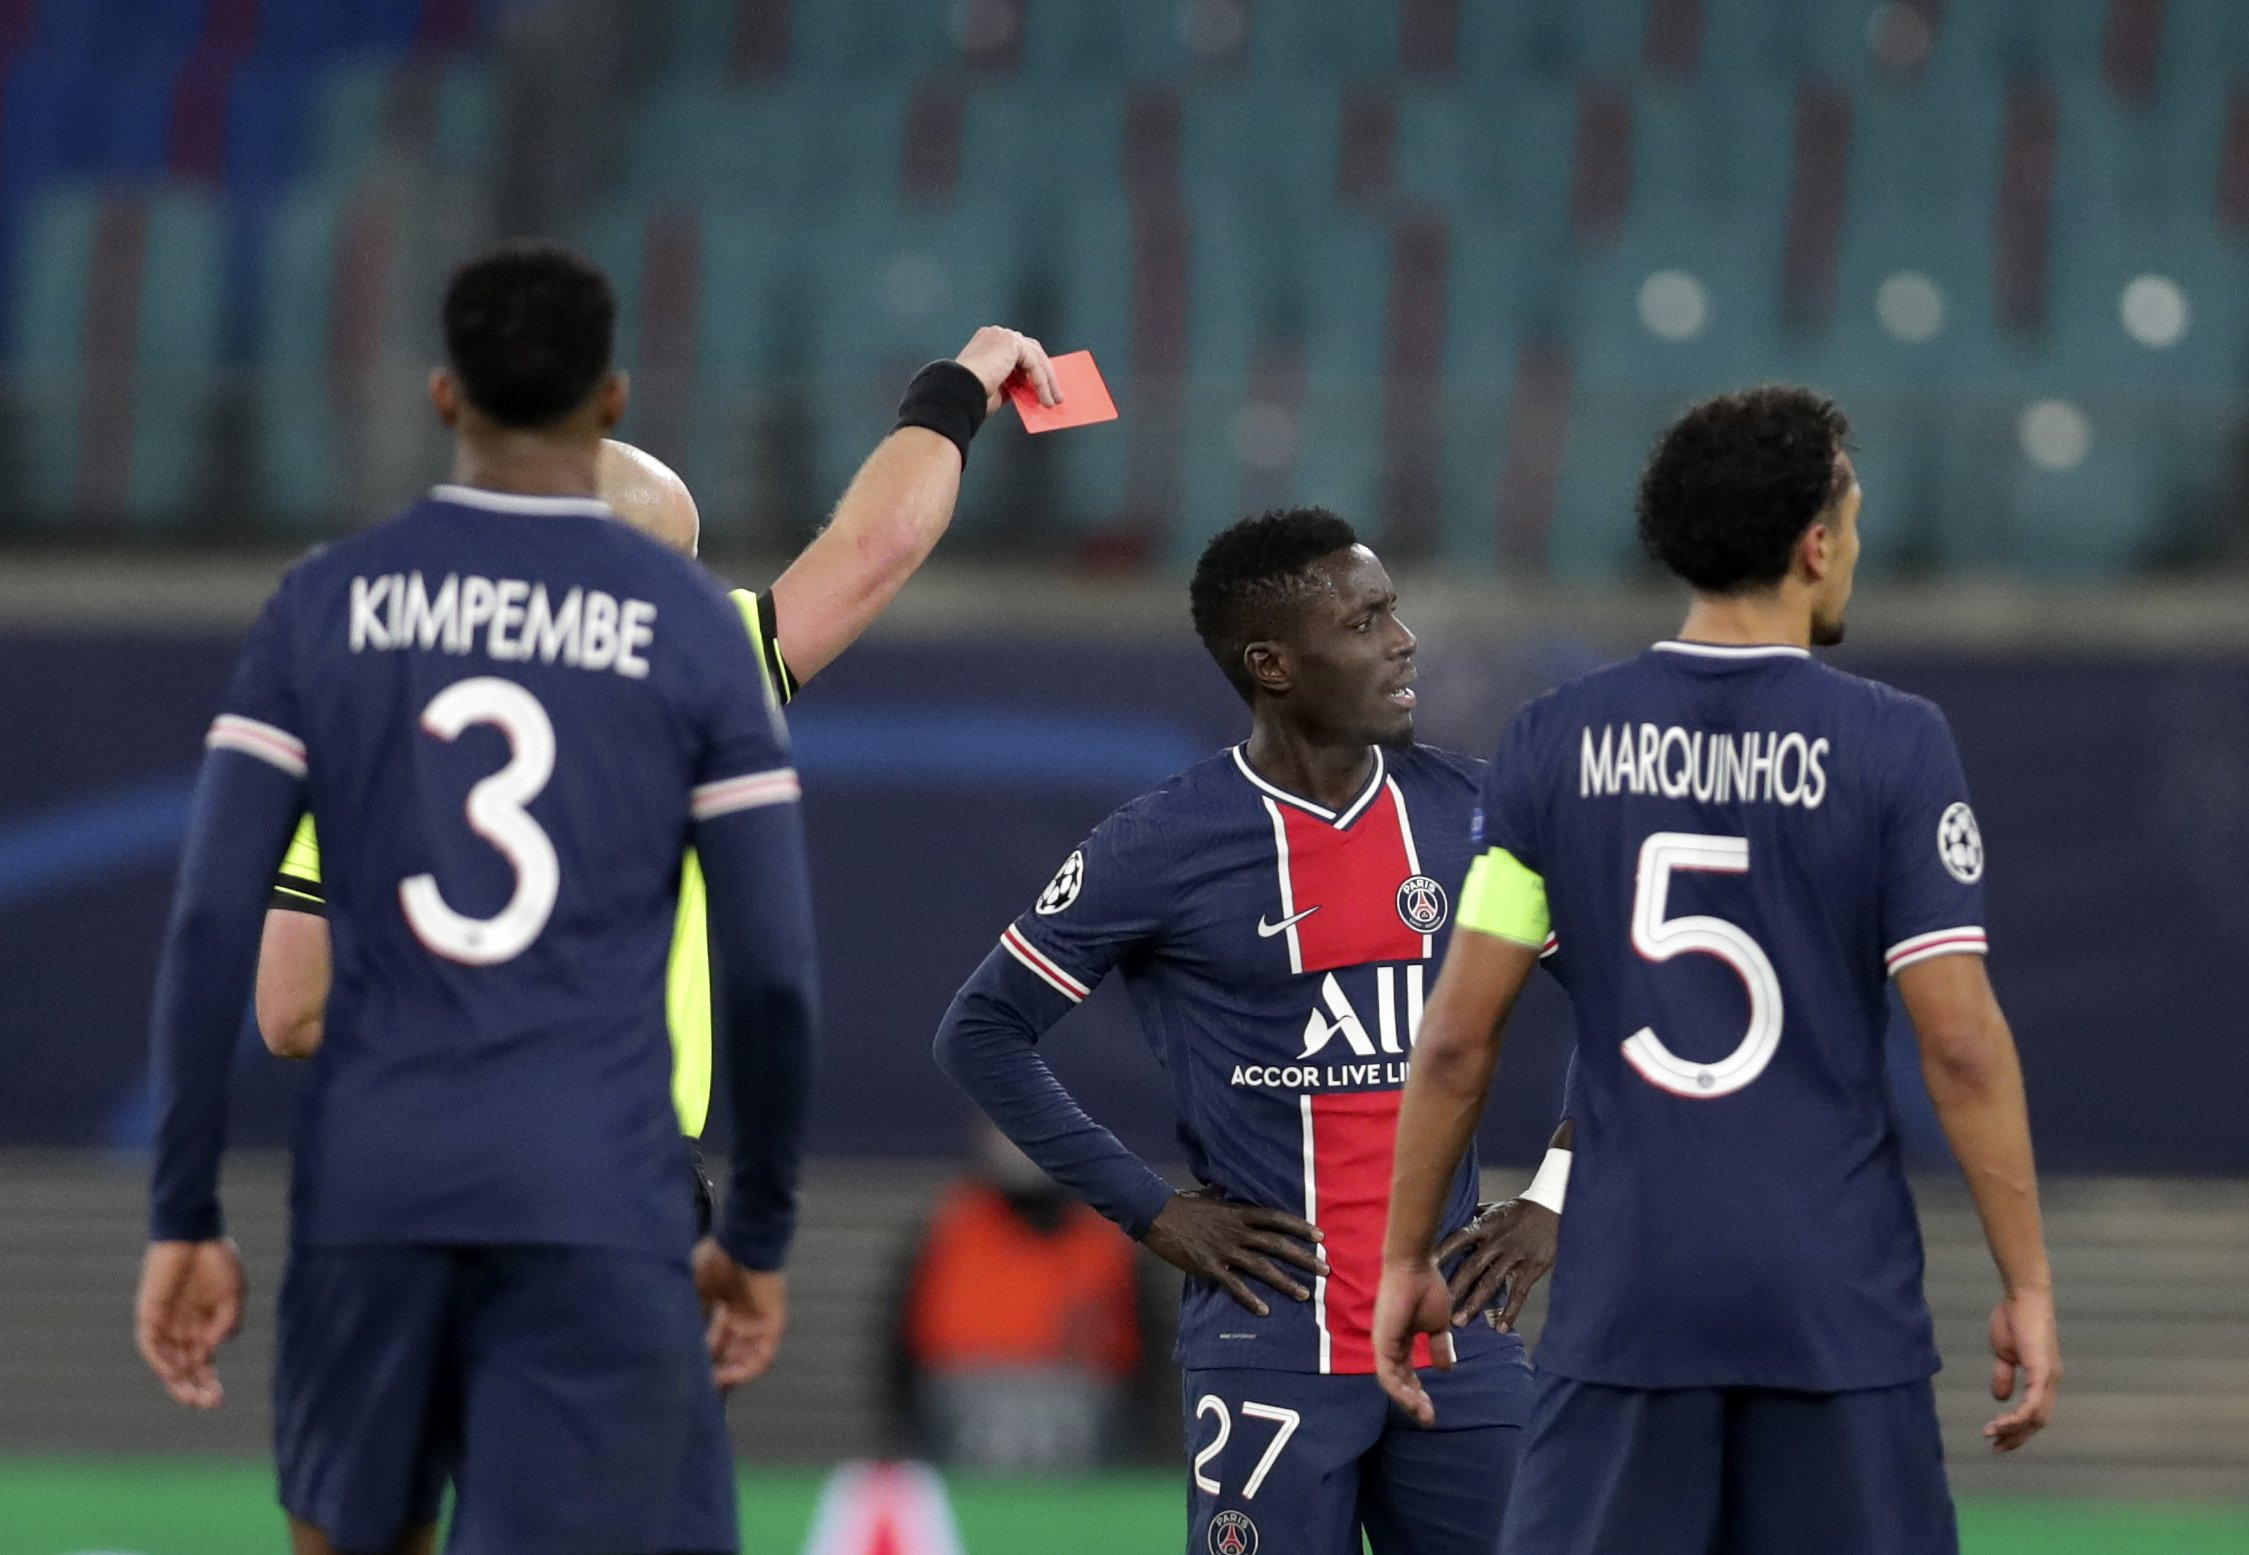 PSG are coming off a loss in the Champions League. (PHOTO/Courtesy)